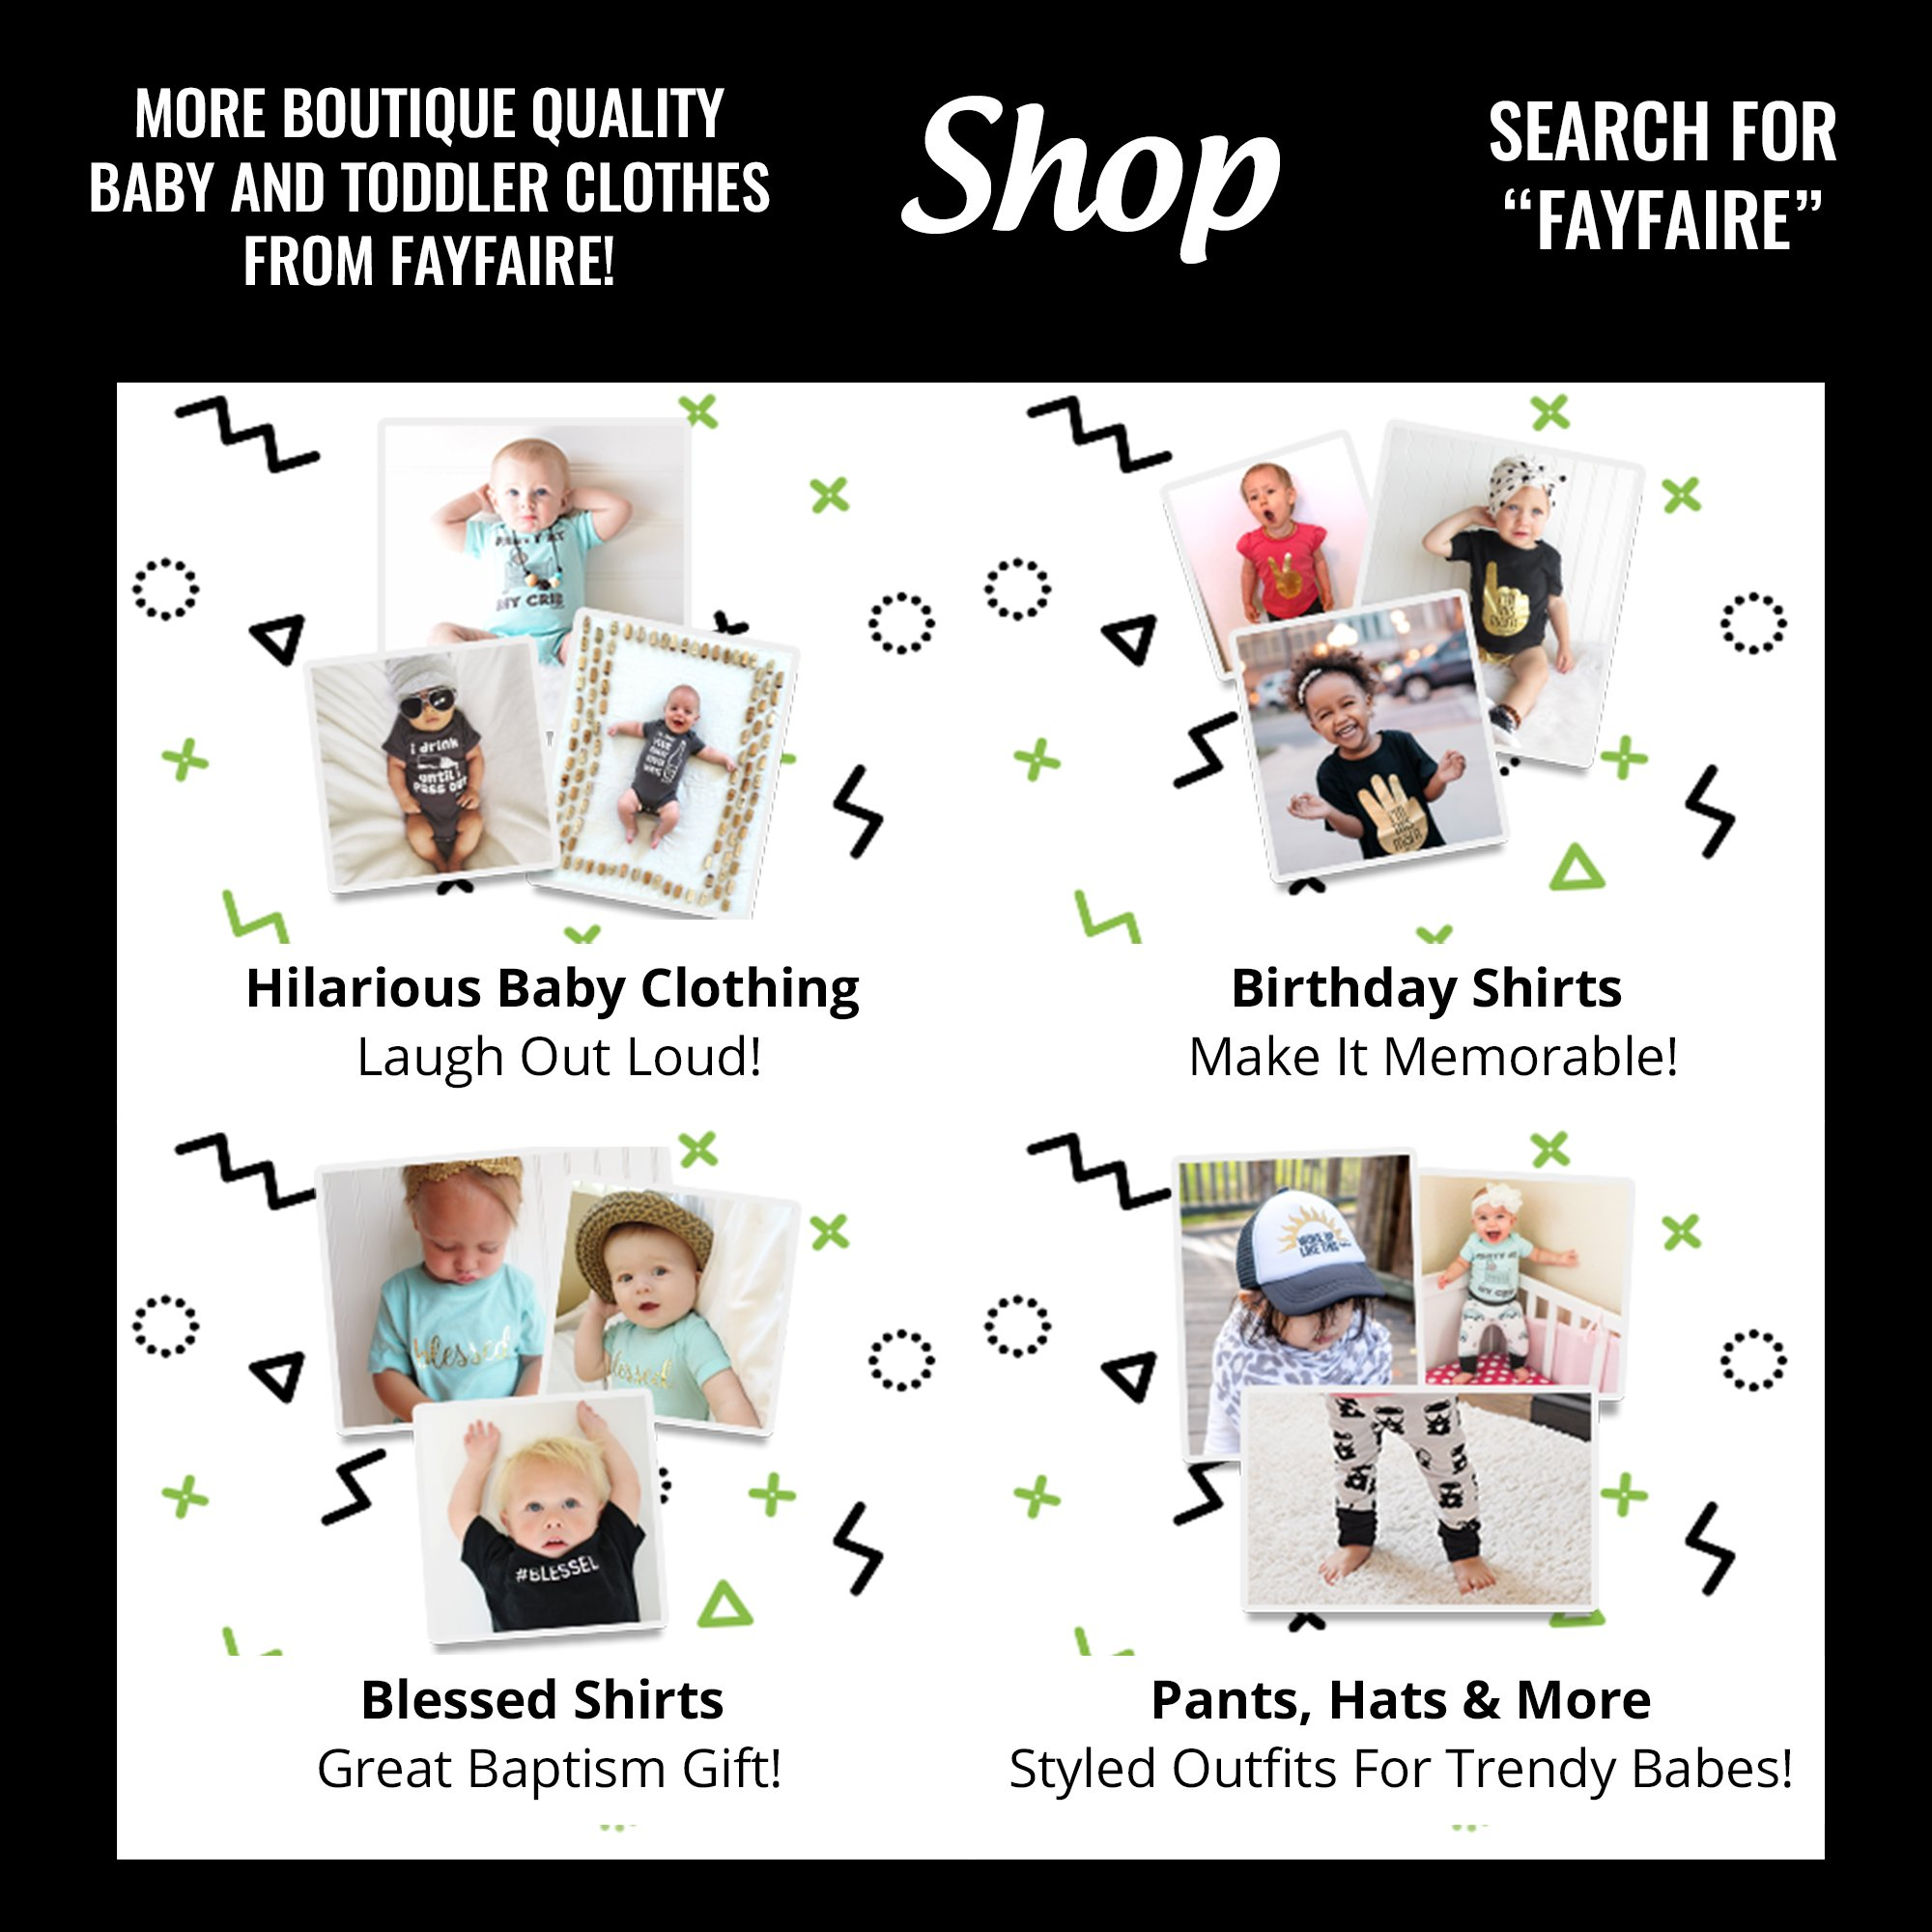 Fayfaire Big Sister Shirt Outfit : Boutique Quality Pregnancy Announcement Newest Big Sis 3T by Fayfaire (Image #7)